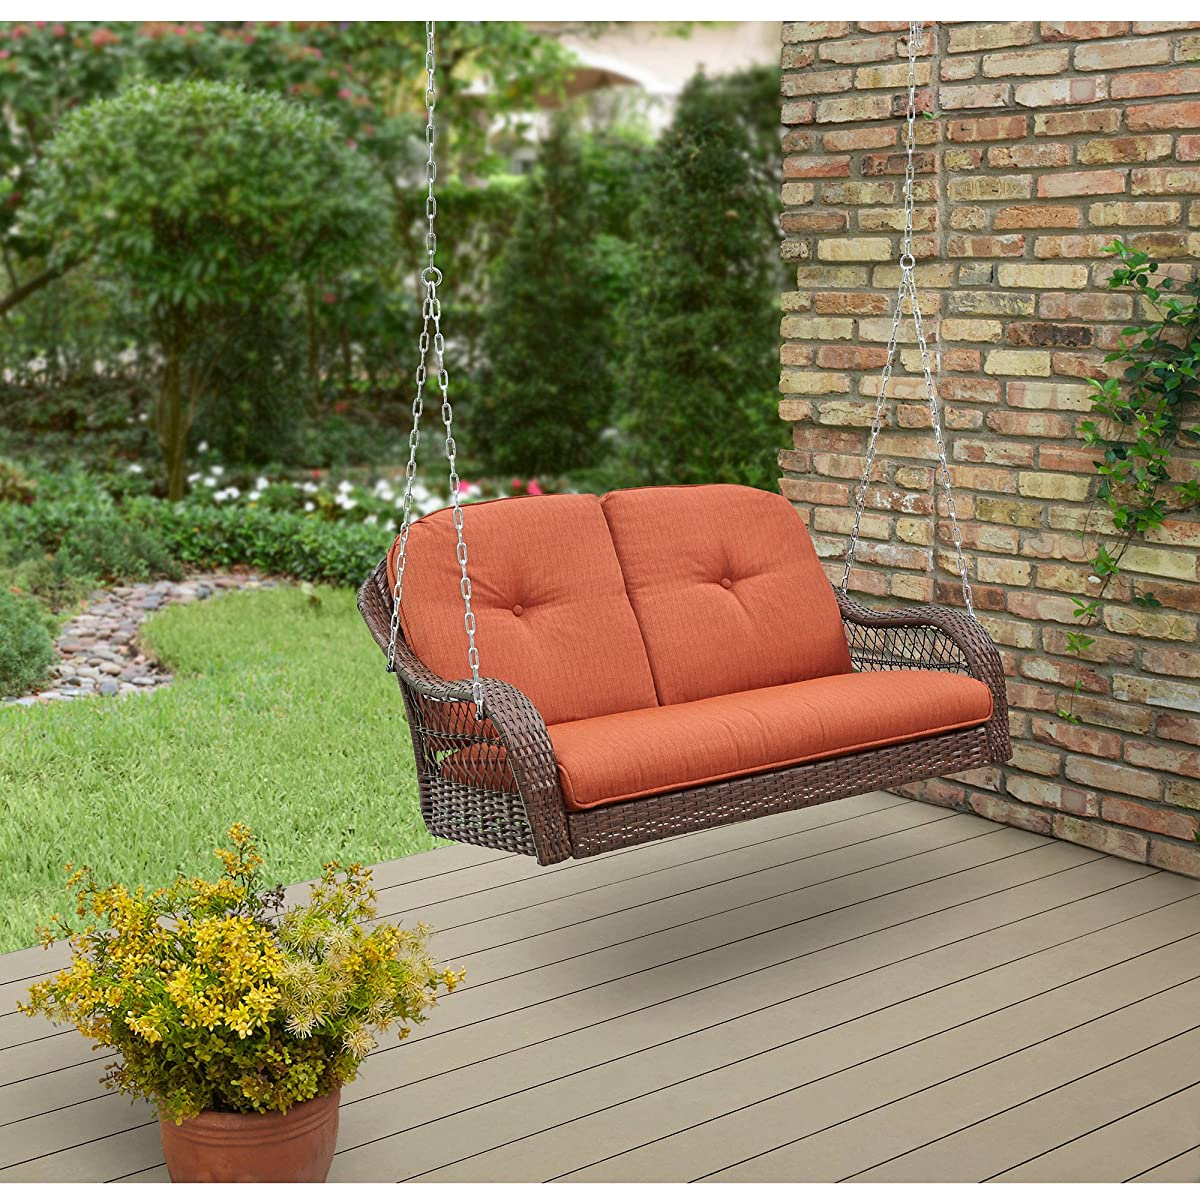 Better Homes and Garden Azalea Ridge Relax Carefree Comfortable Seat Powder Coating Steel Frame Polyester Fabrics Cushion Outdoor Wicker Swings, 2 Seats , Orange Brown